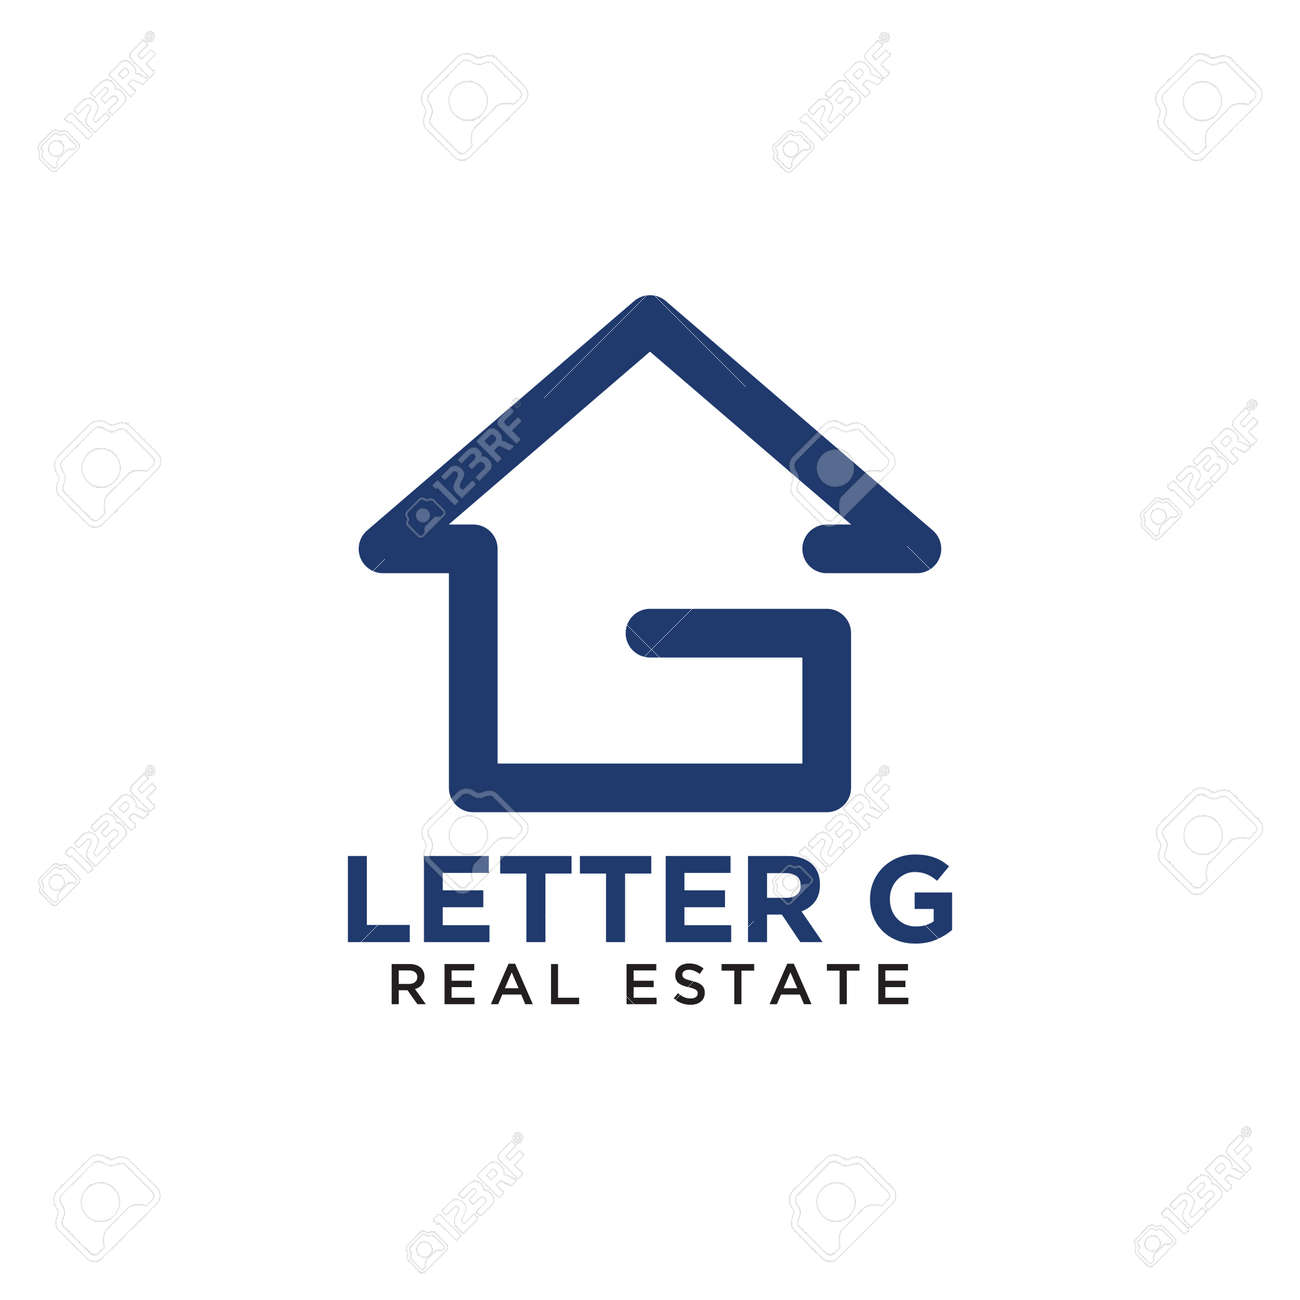 initial letter g home real estate logo design template ロイヤリティ